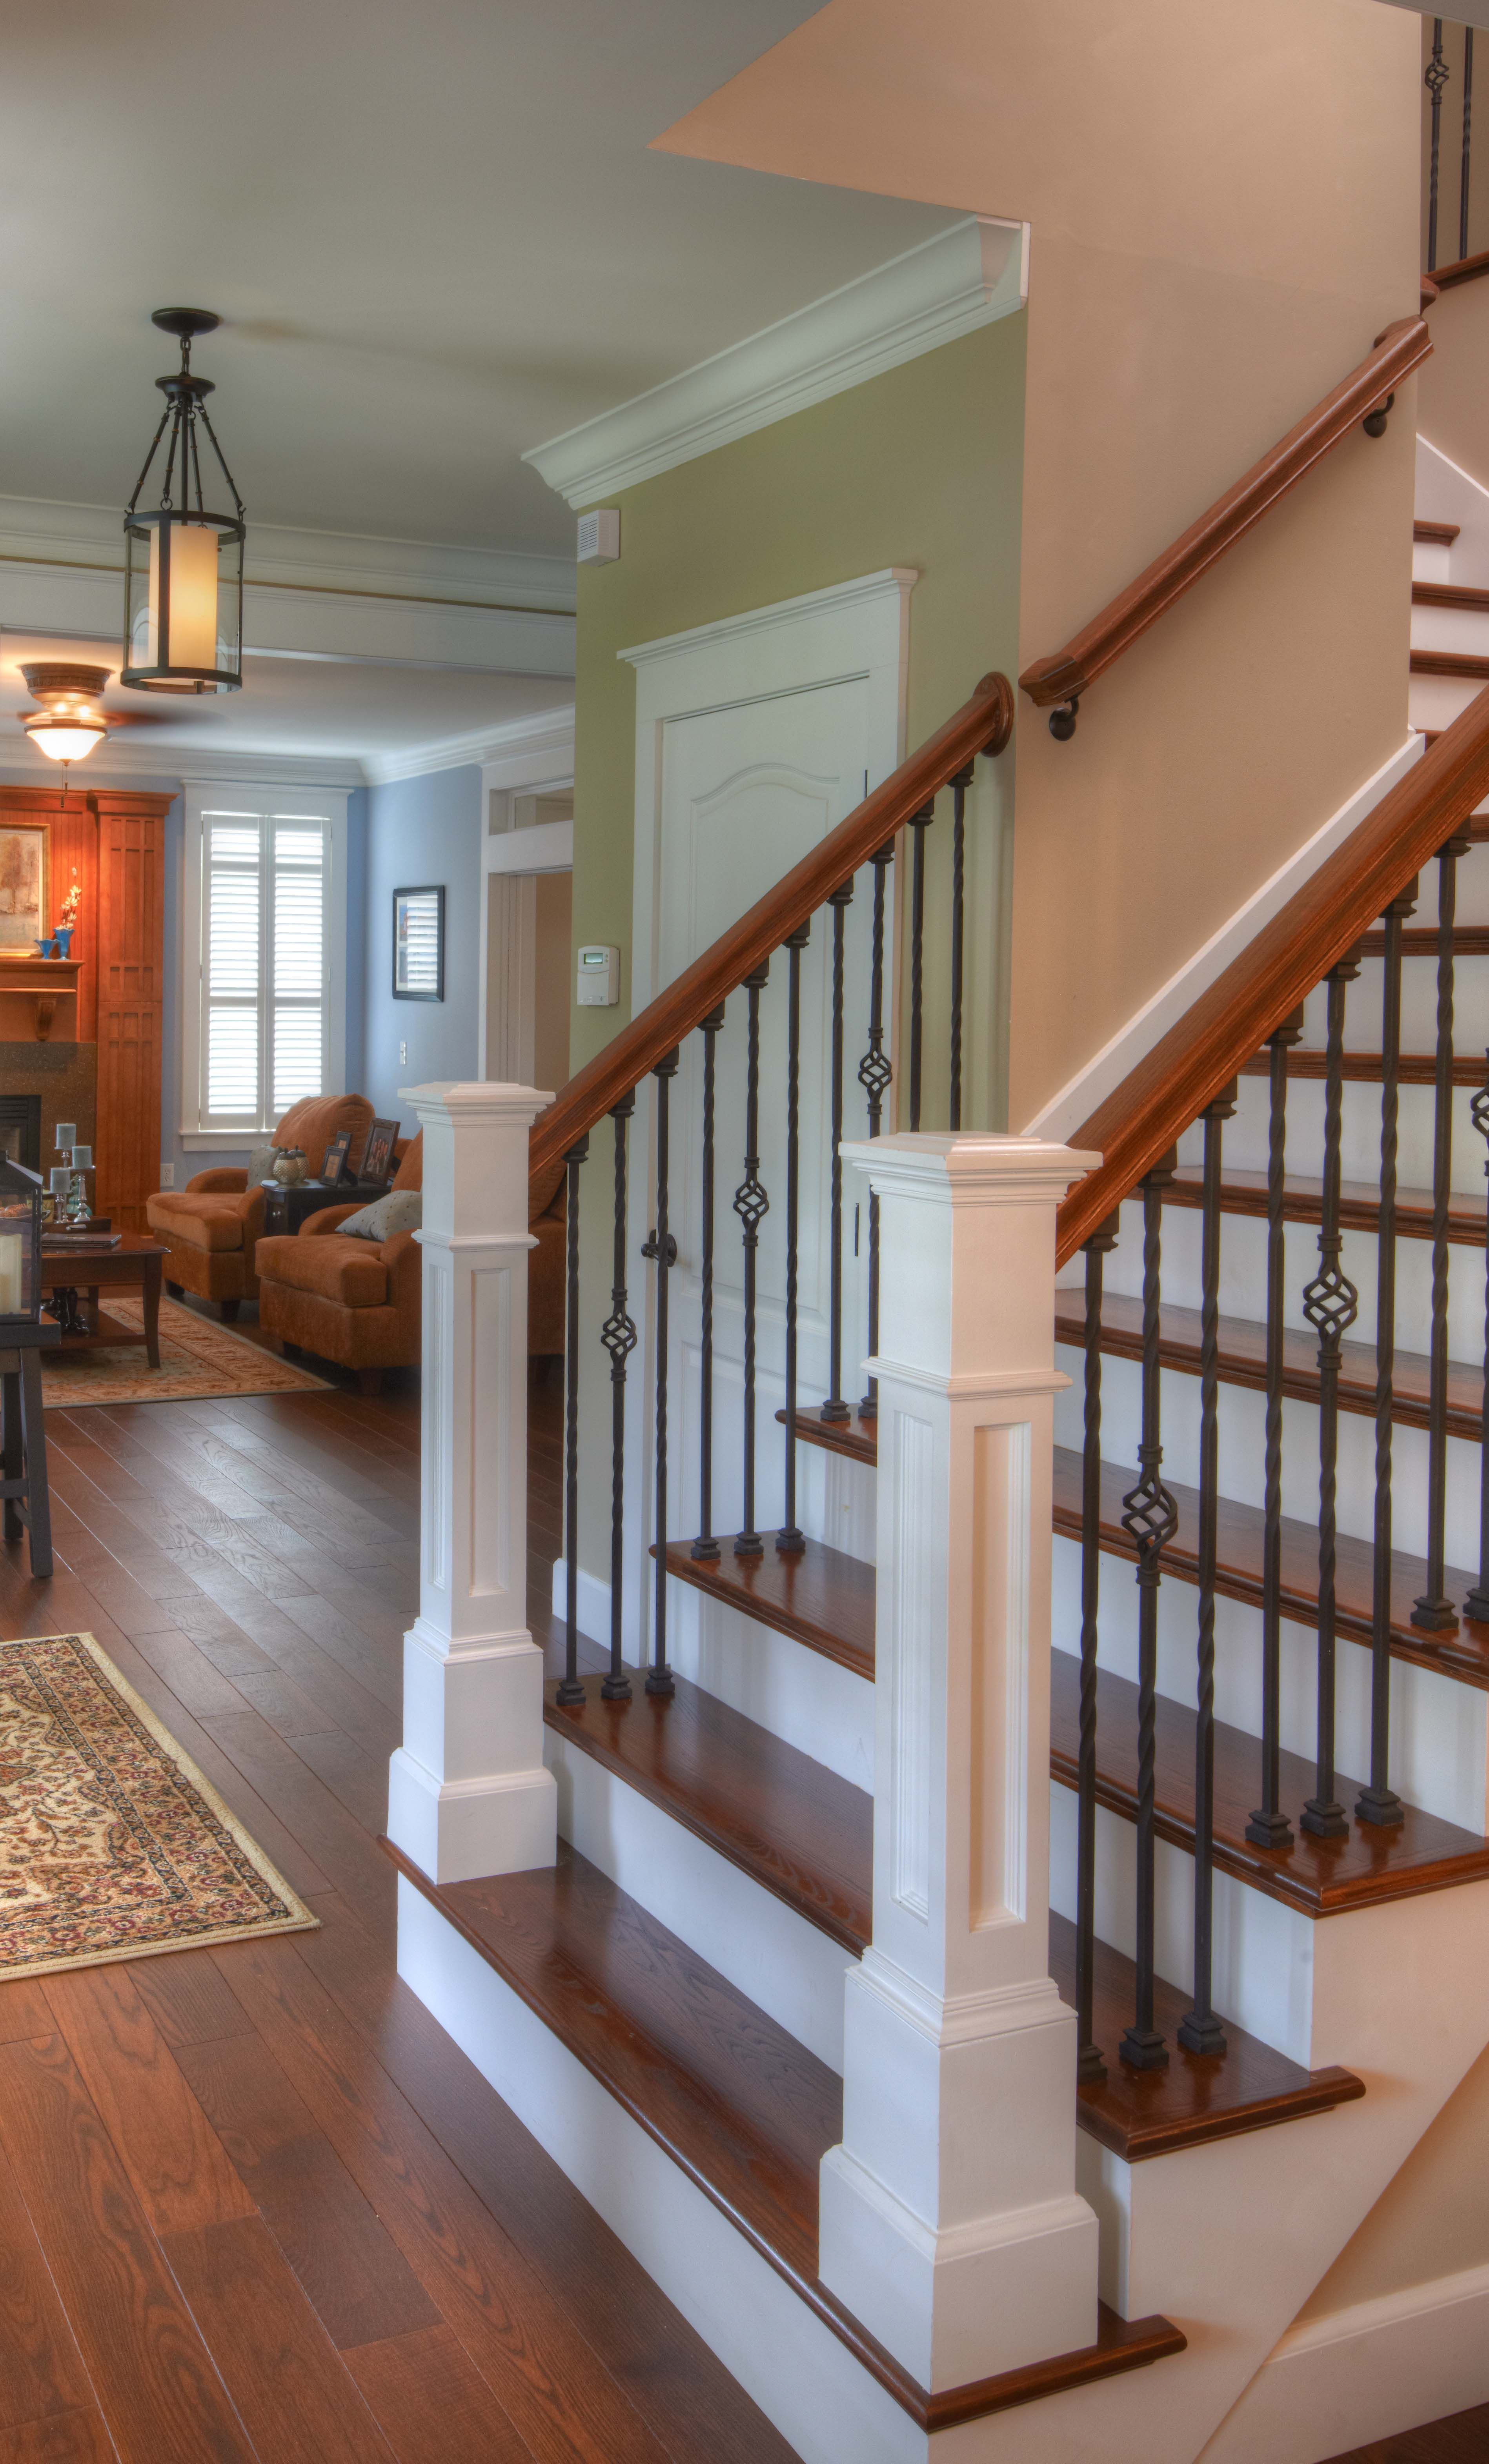 Hardwood flooring up the stairs classic look rod iron balusters wood railings and white posts